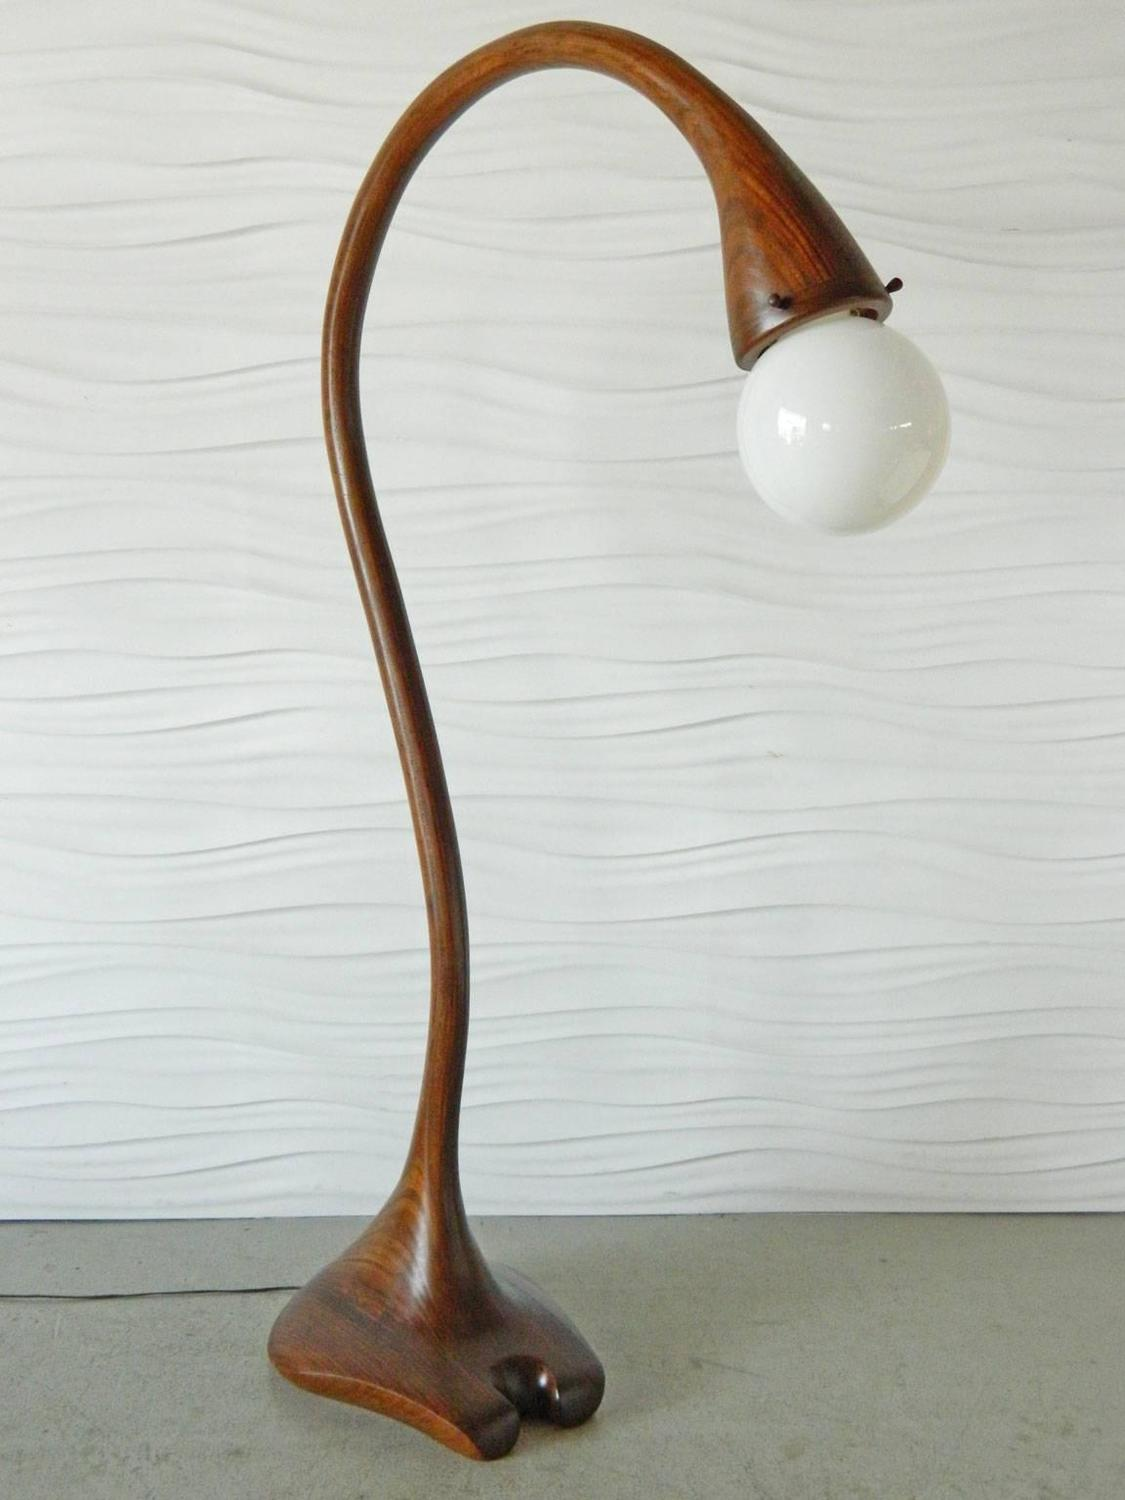 Studio Laminated Wood Arc Floor Lamp For Sale At 1stdibs